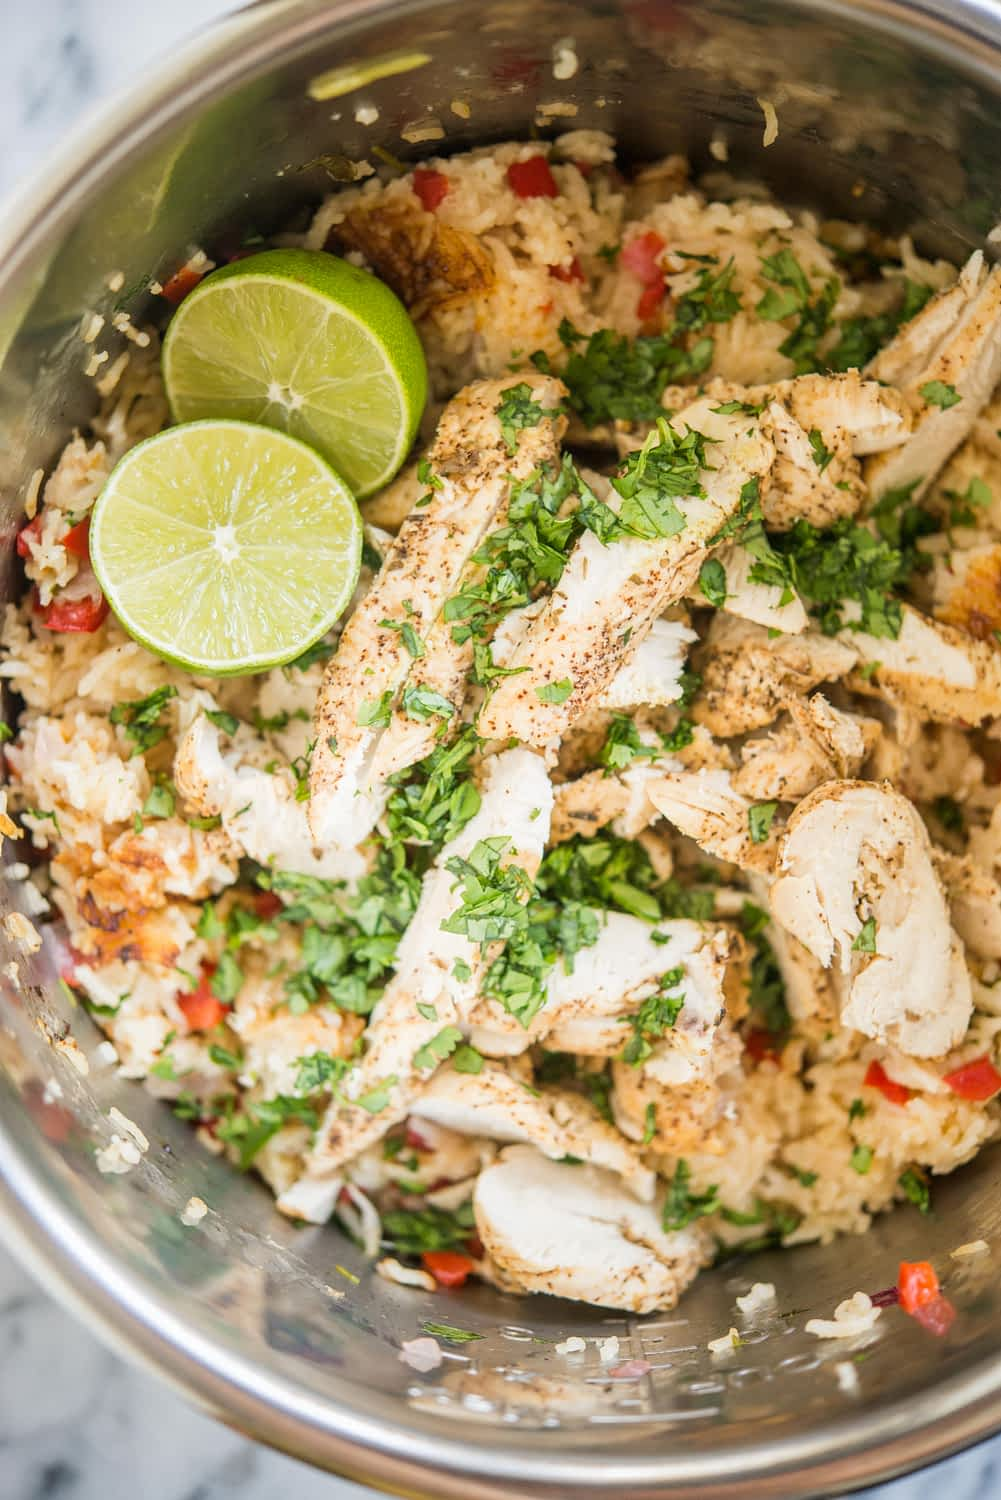 instant pot chicken fajitas and rice in a metal pot garnished with limes and chopped cilantro